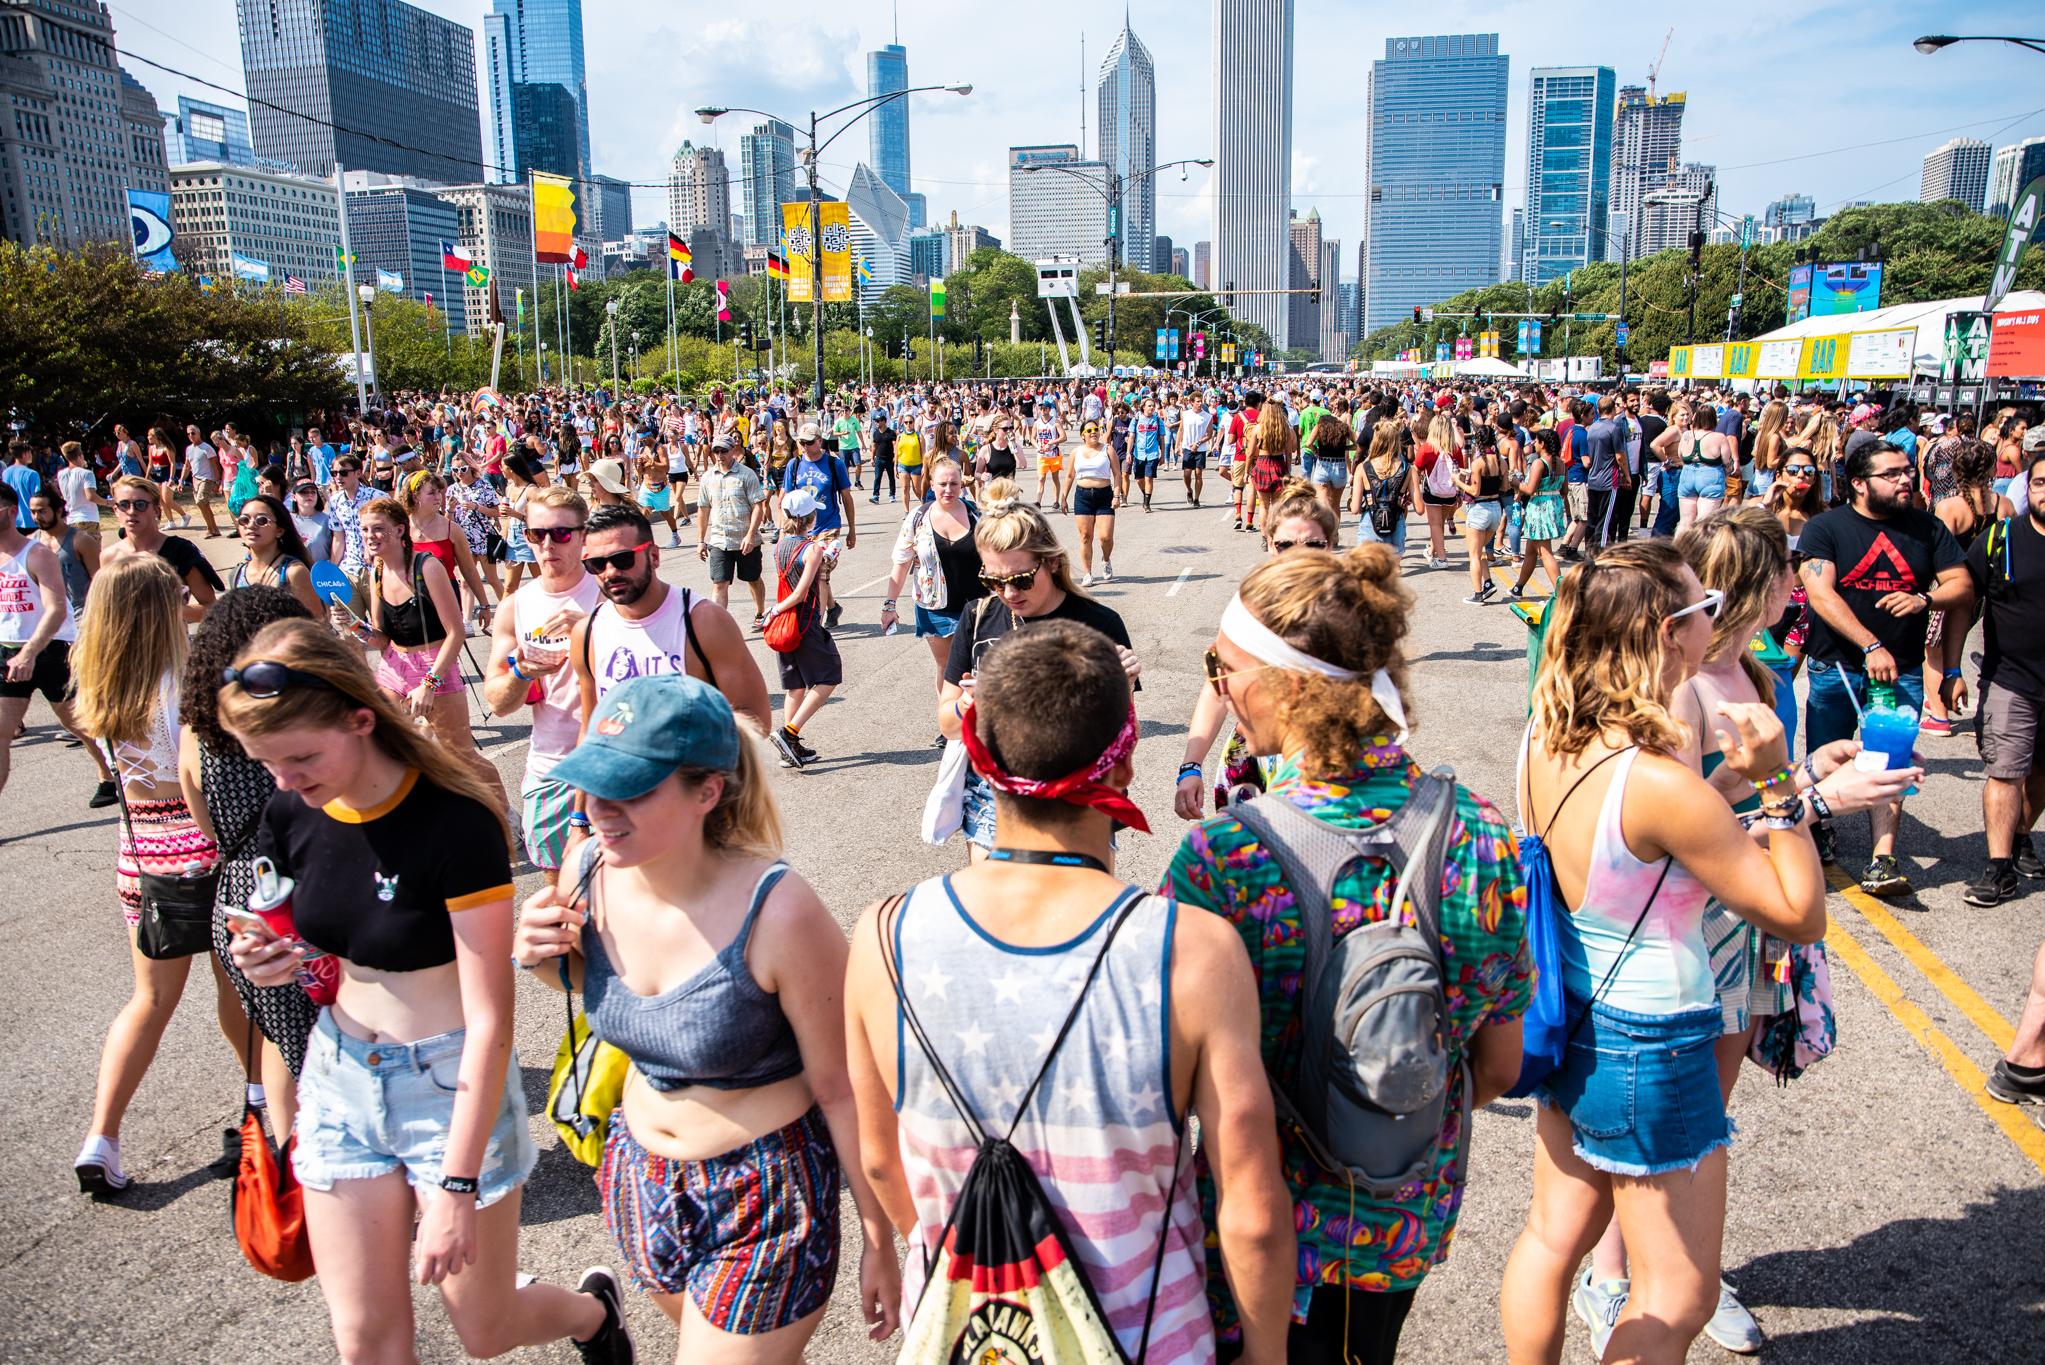 Here's what you need to know about Lollapalooza 2019